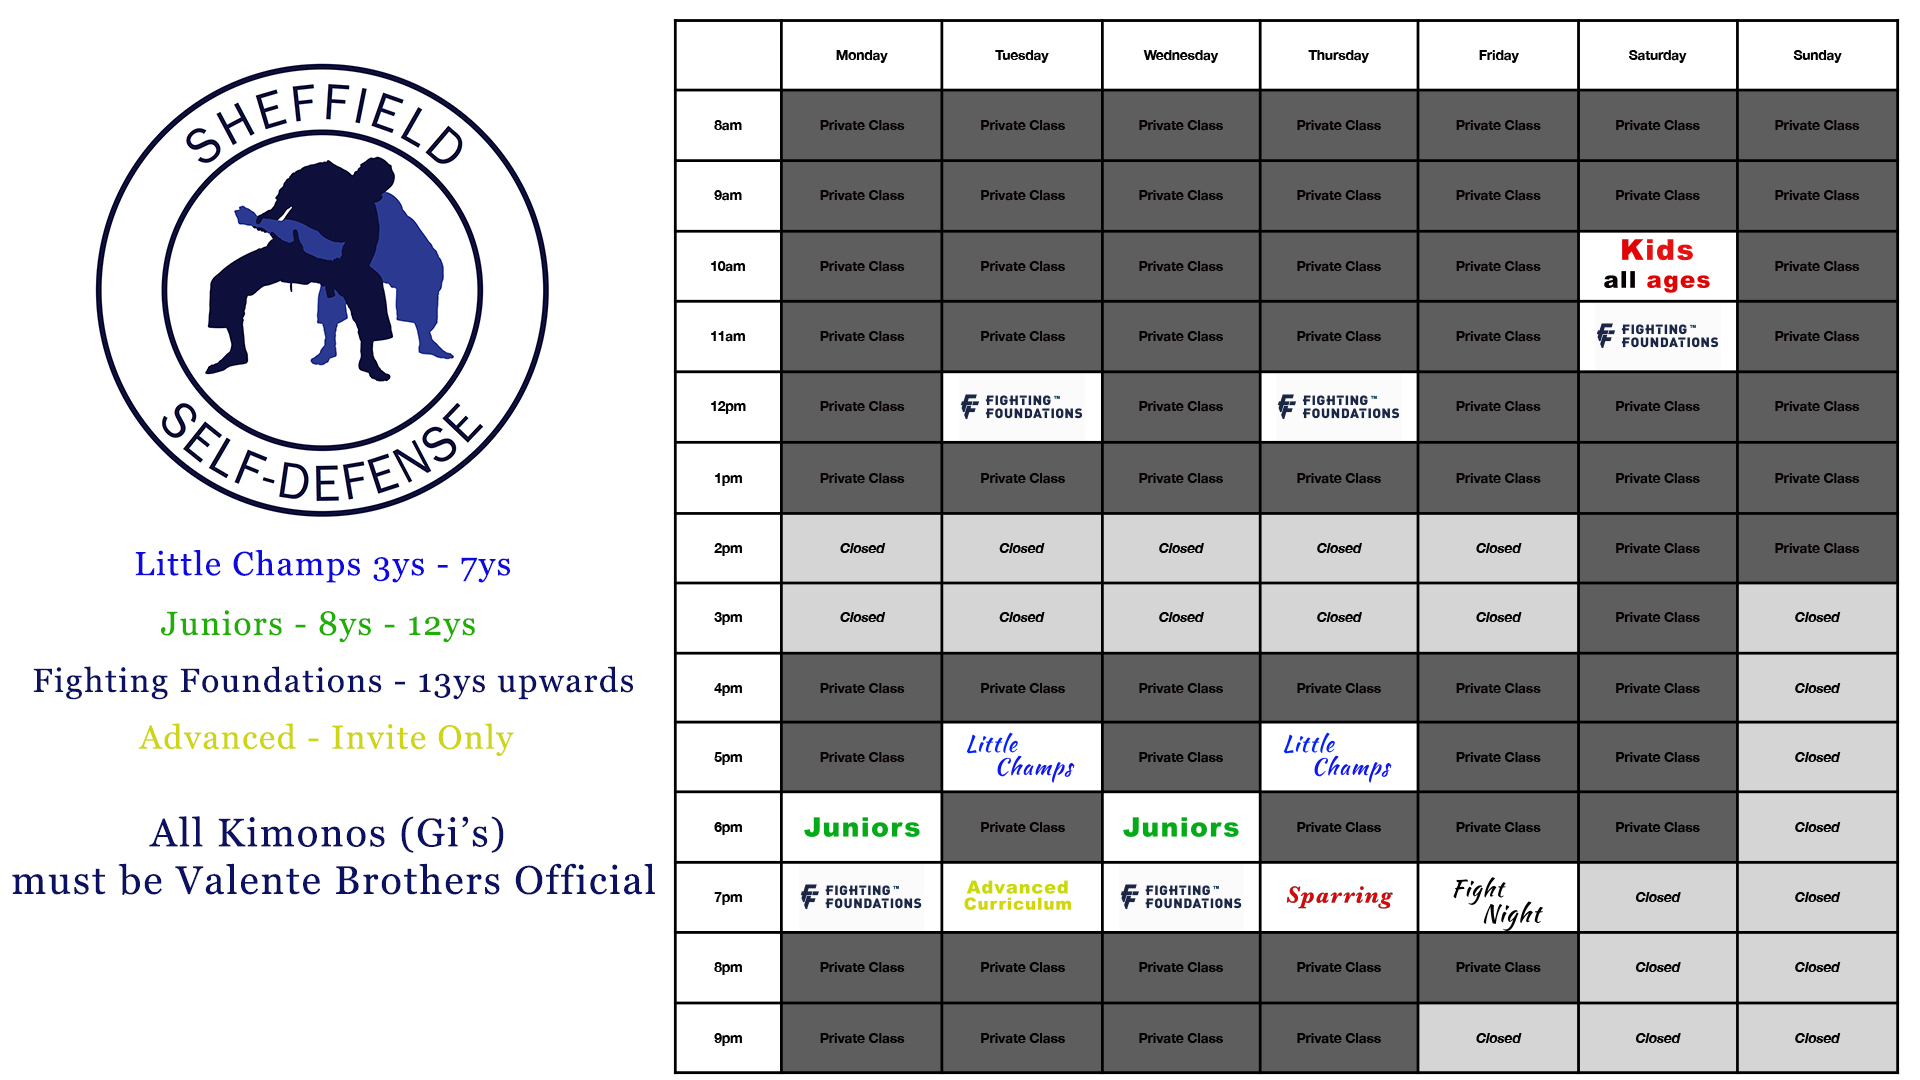 Sheffield Self-Defence Opening times